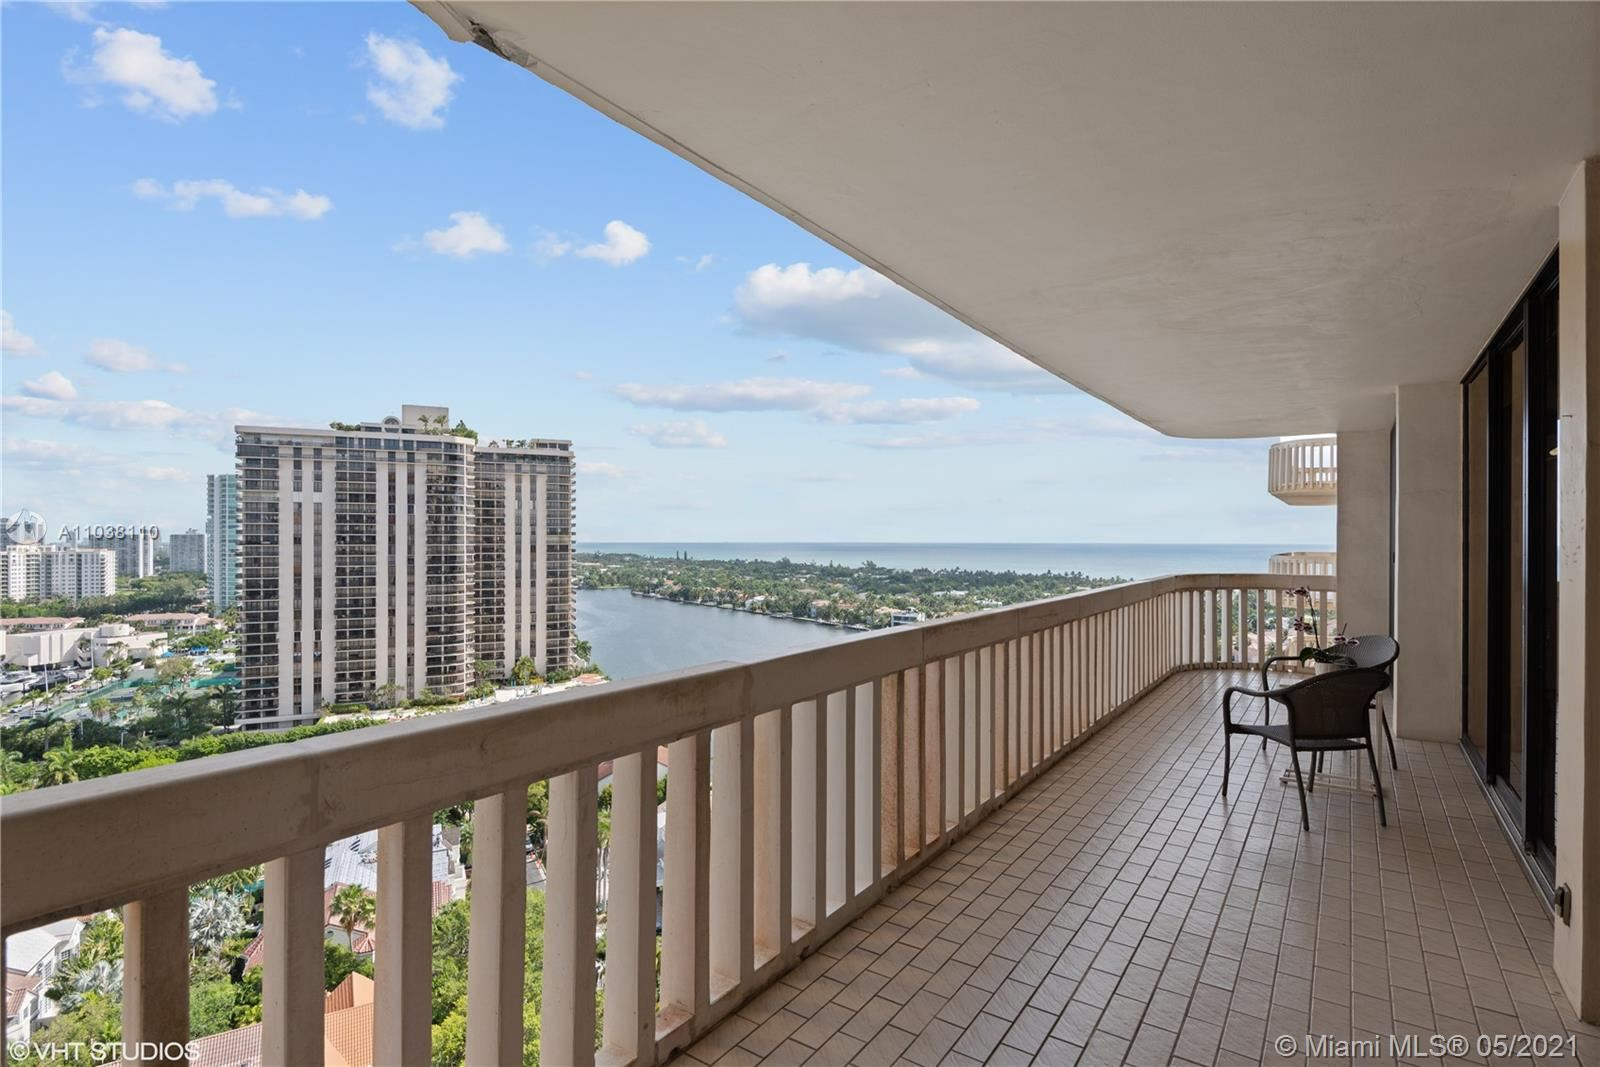 Photo of 19355 Turnberry Way #18L, Aventura, FL 33180 (MLS # A11038110)